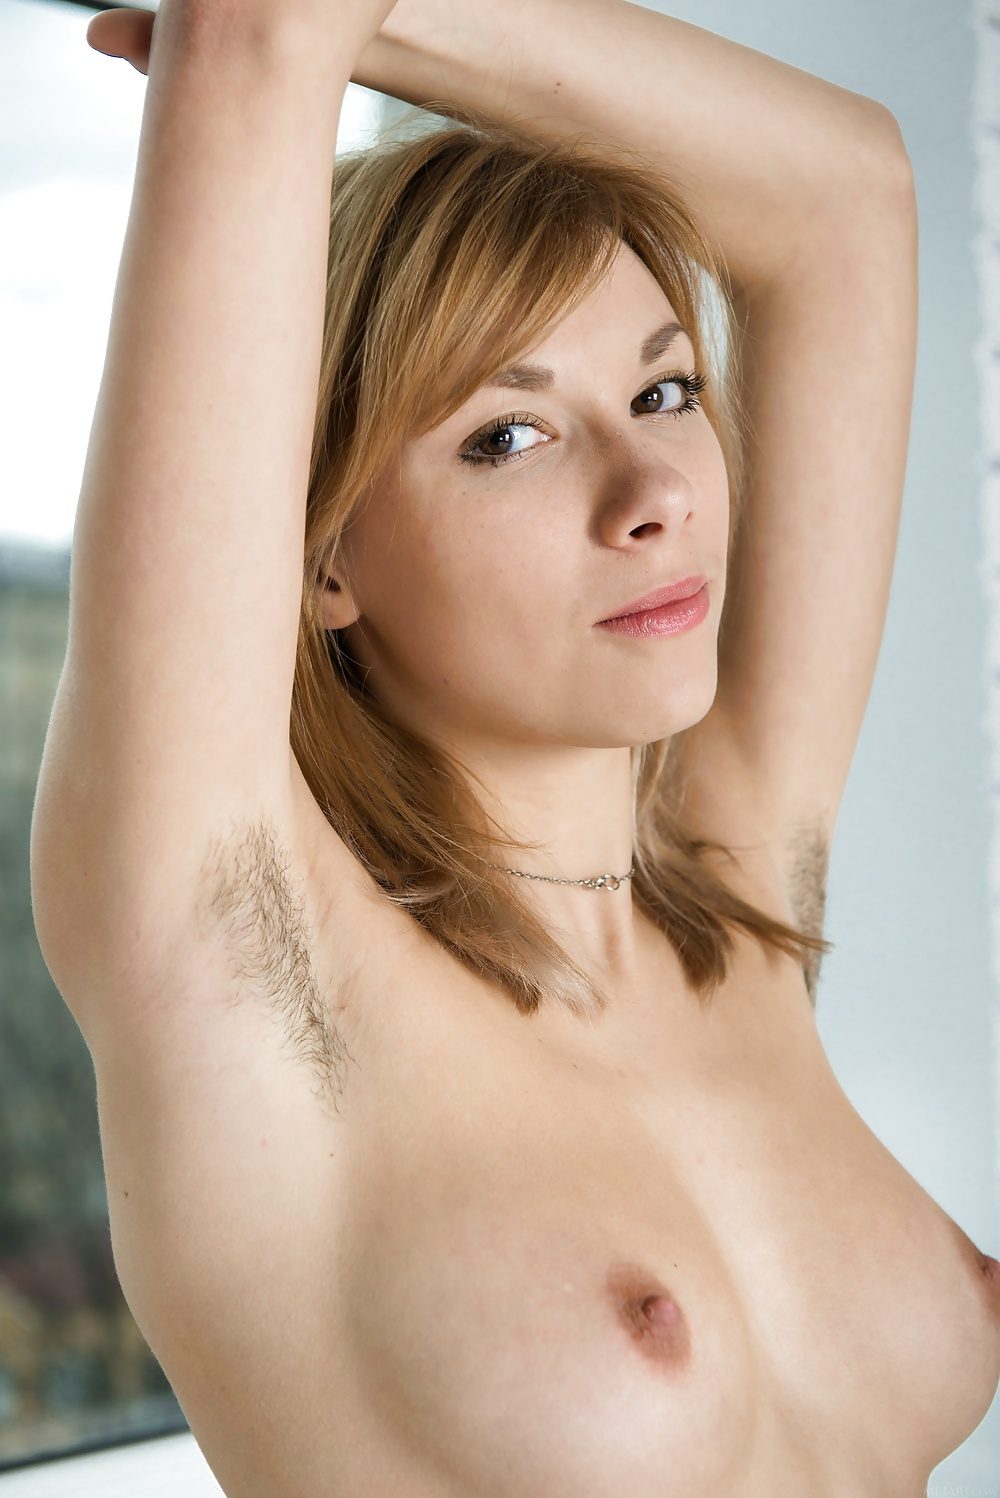 hot-naked-girl-with-hairy-armpits